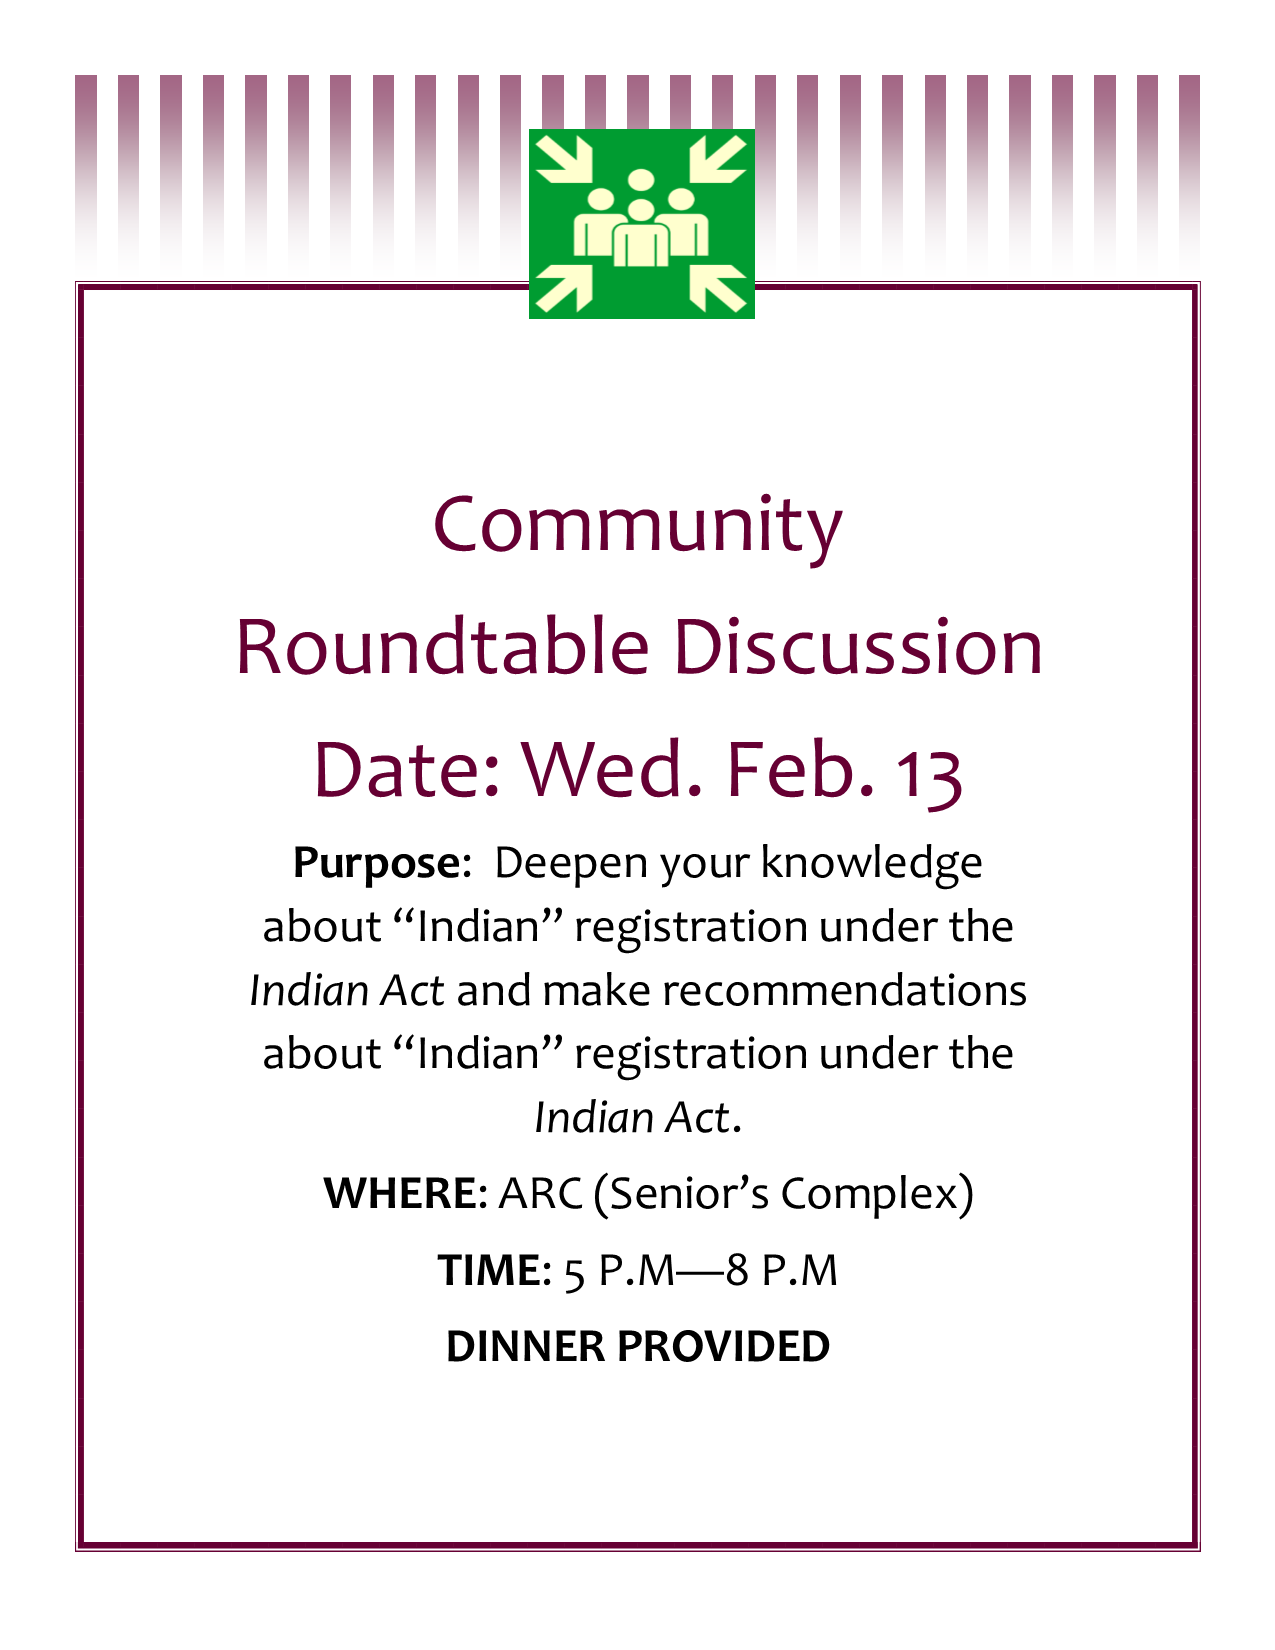 roundtable-discussion